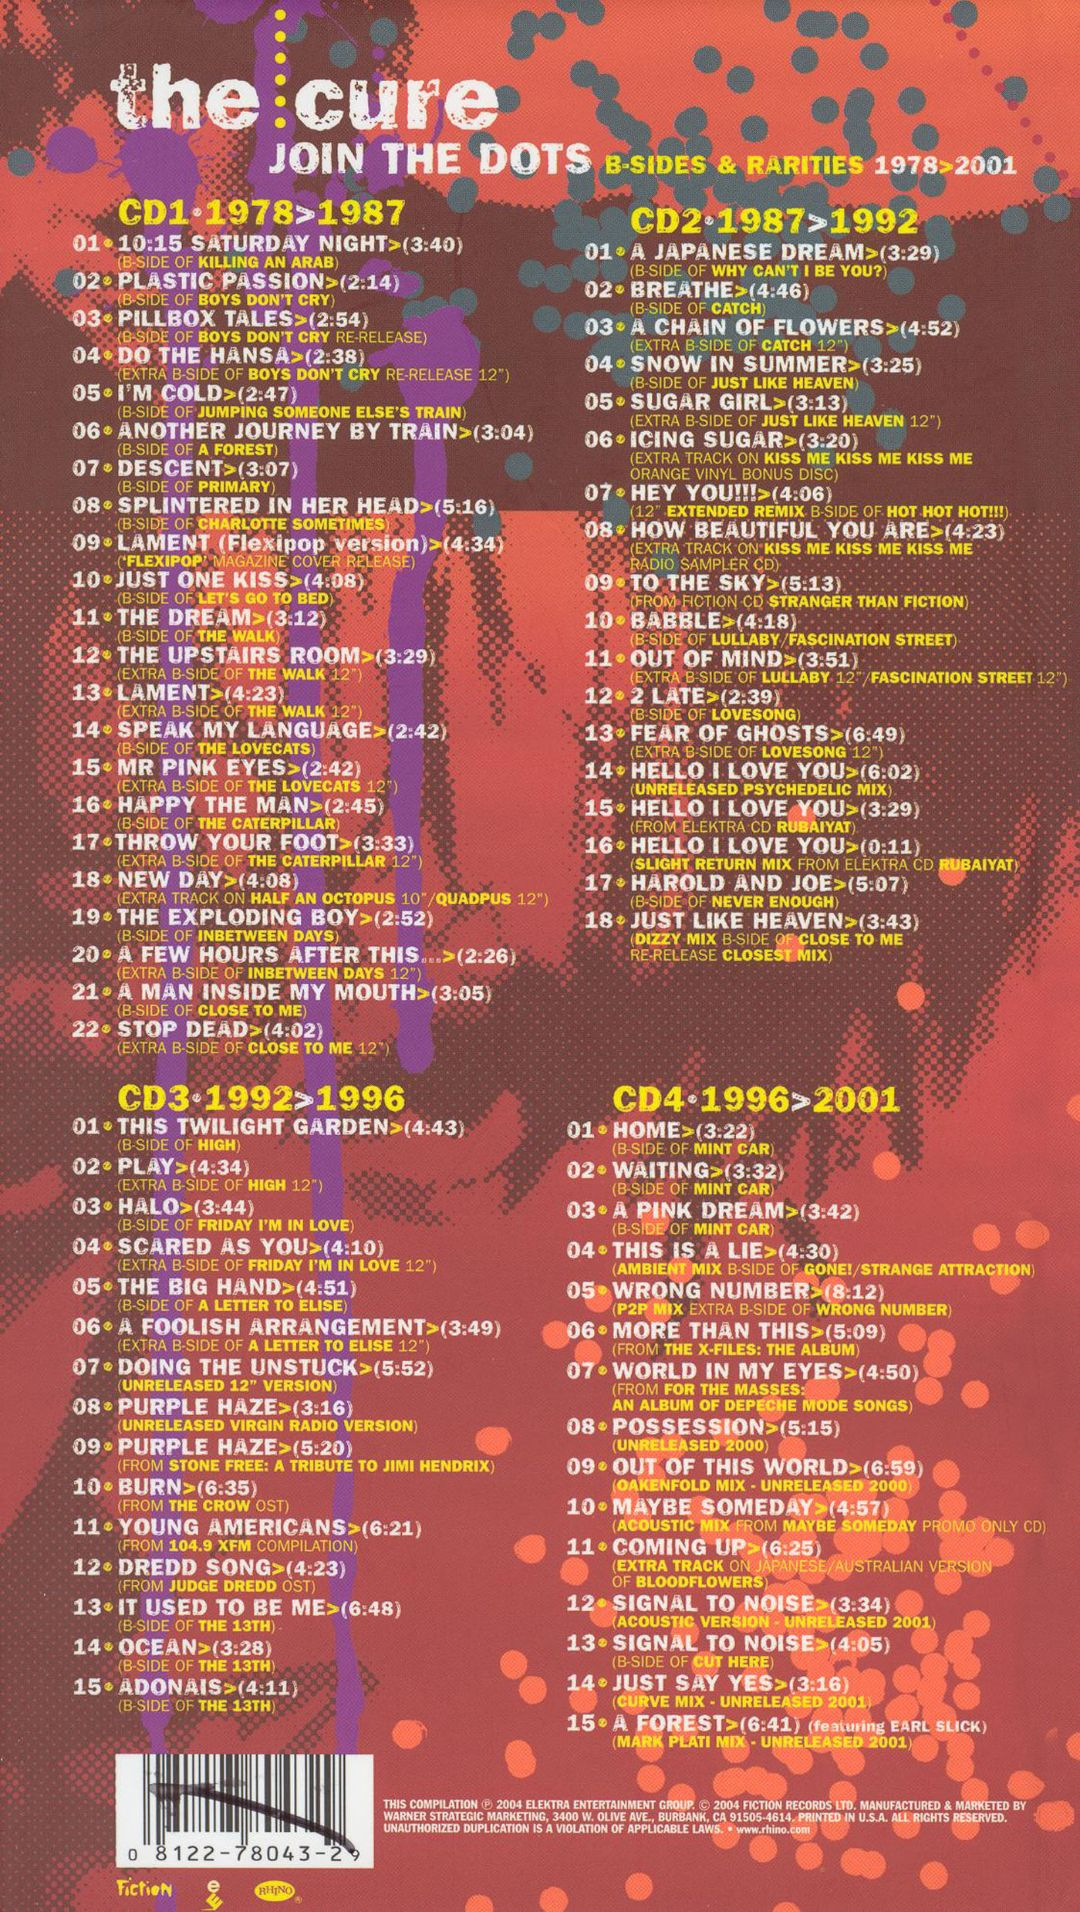 Join the Dots: B-Sides & Rarities, 1978-2001